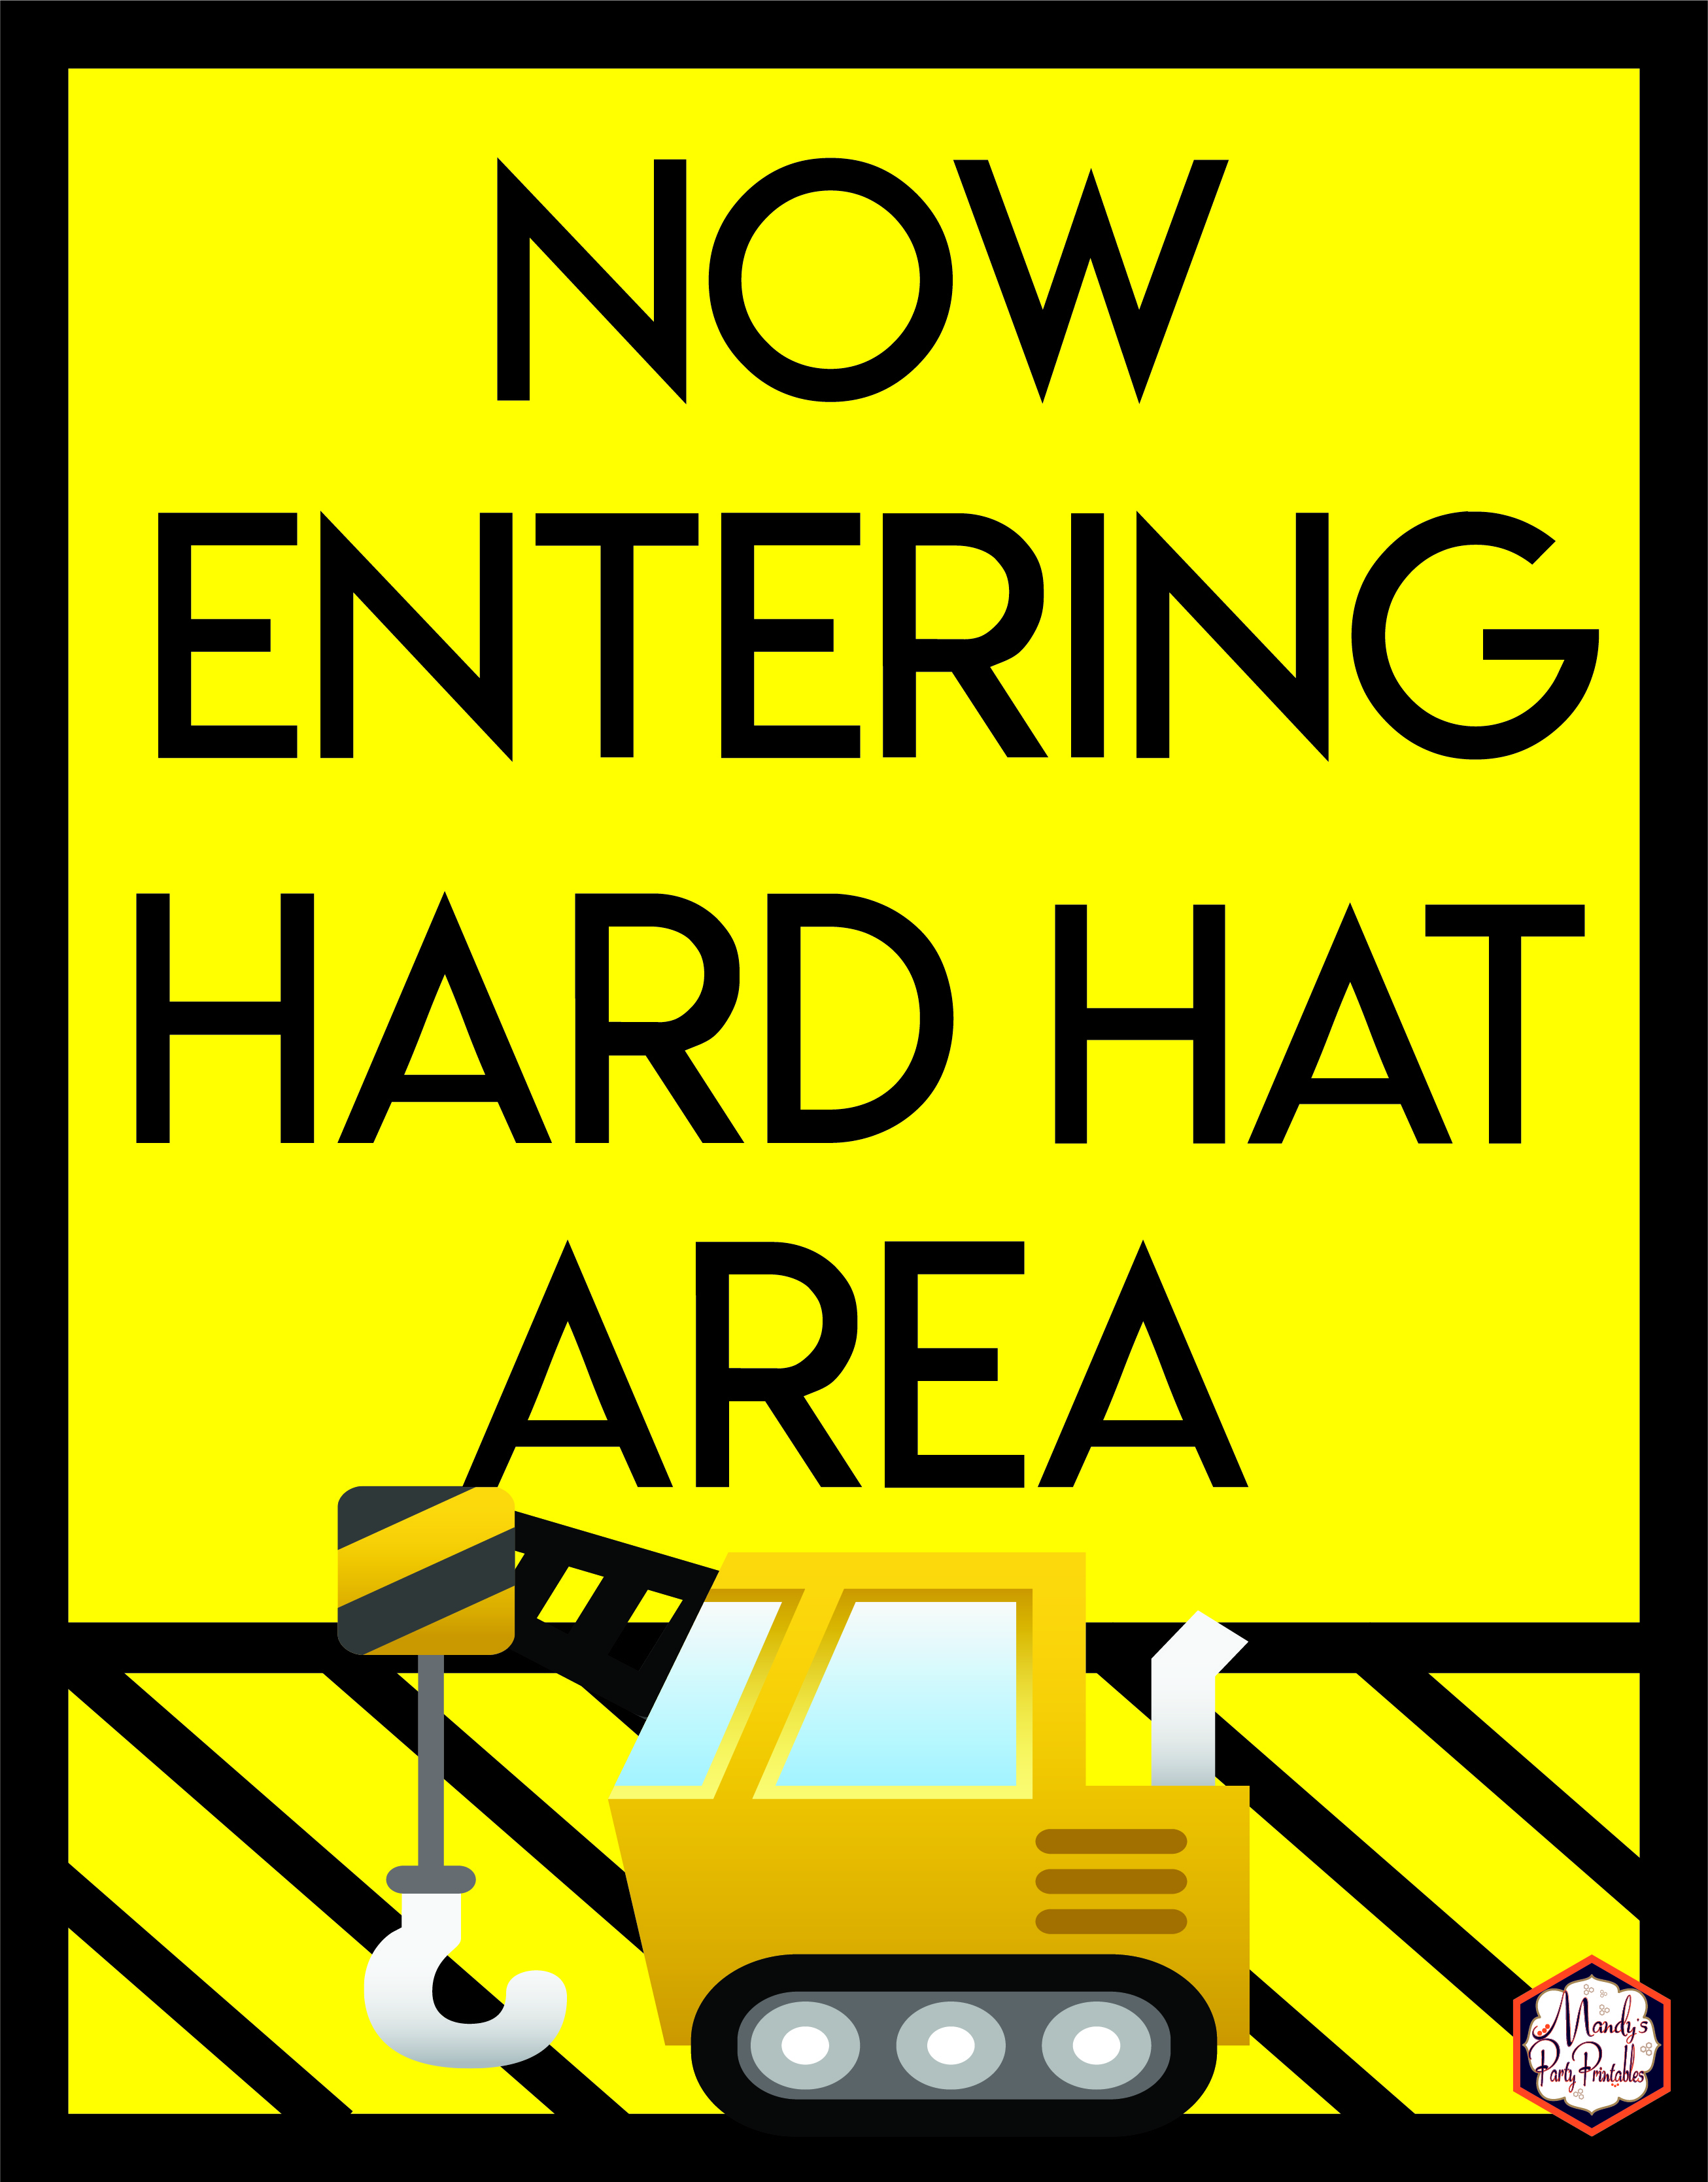 Canny image pertaining to free printable construction party signs